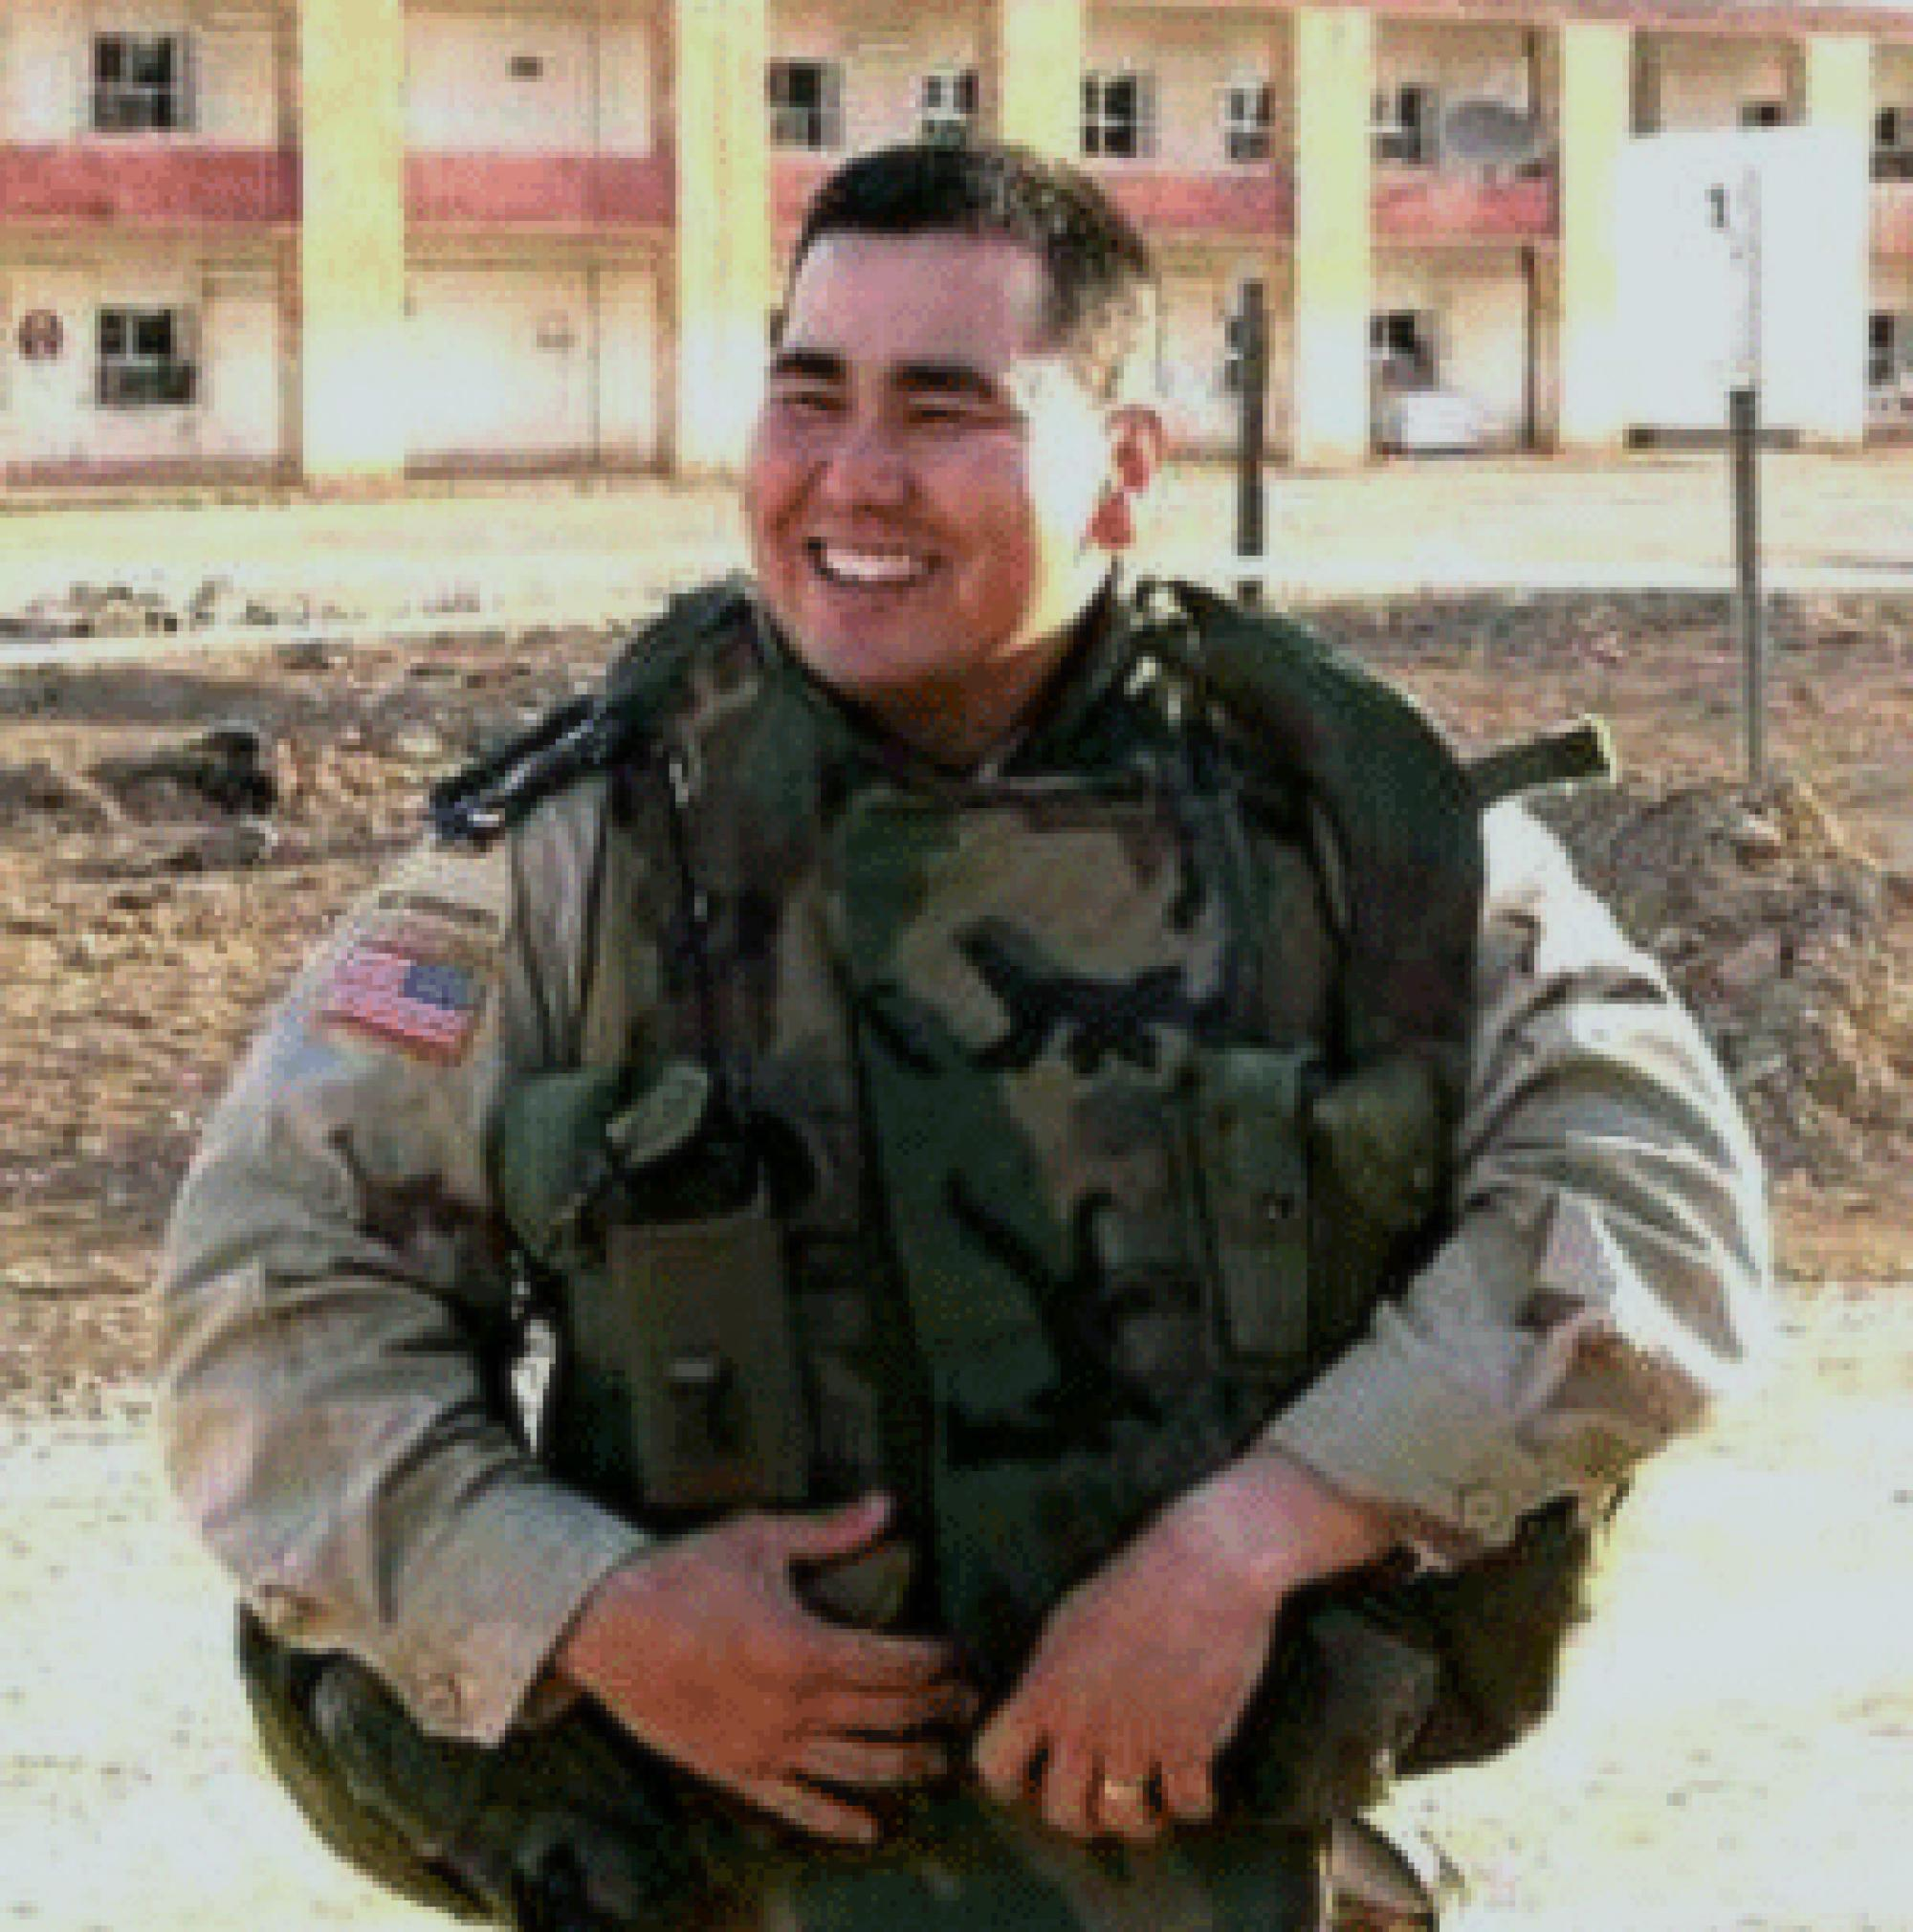 U.S. Army Cpt. John E. Tipton was in Iraq, conducting combat operation in 2004 when he was killed in an explosion. A scholarship was established at the UA in honor of Tipton, targeting low-income students who are interested in pursuing studies in science